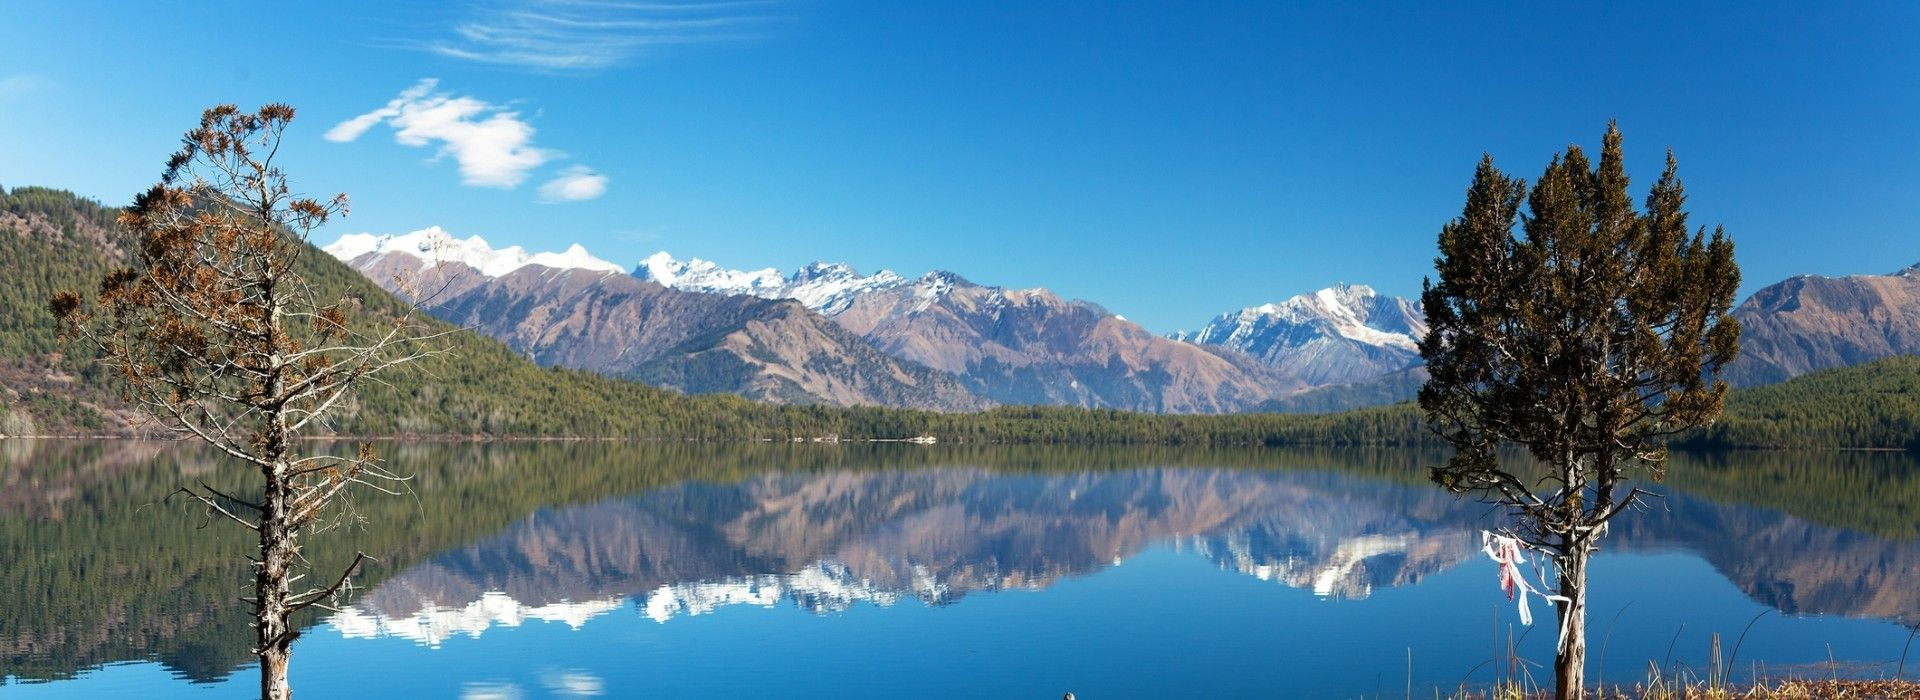 Travelling Rara Lake - Tours and Holiday Packages in Rara Lake